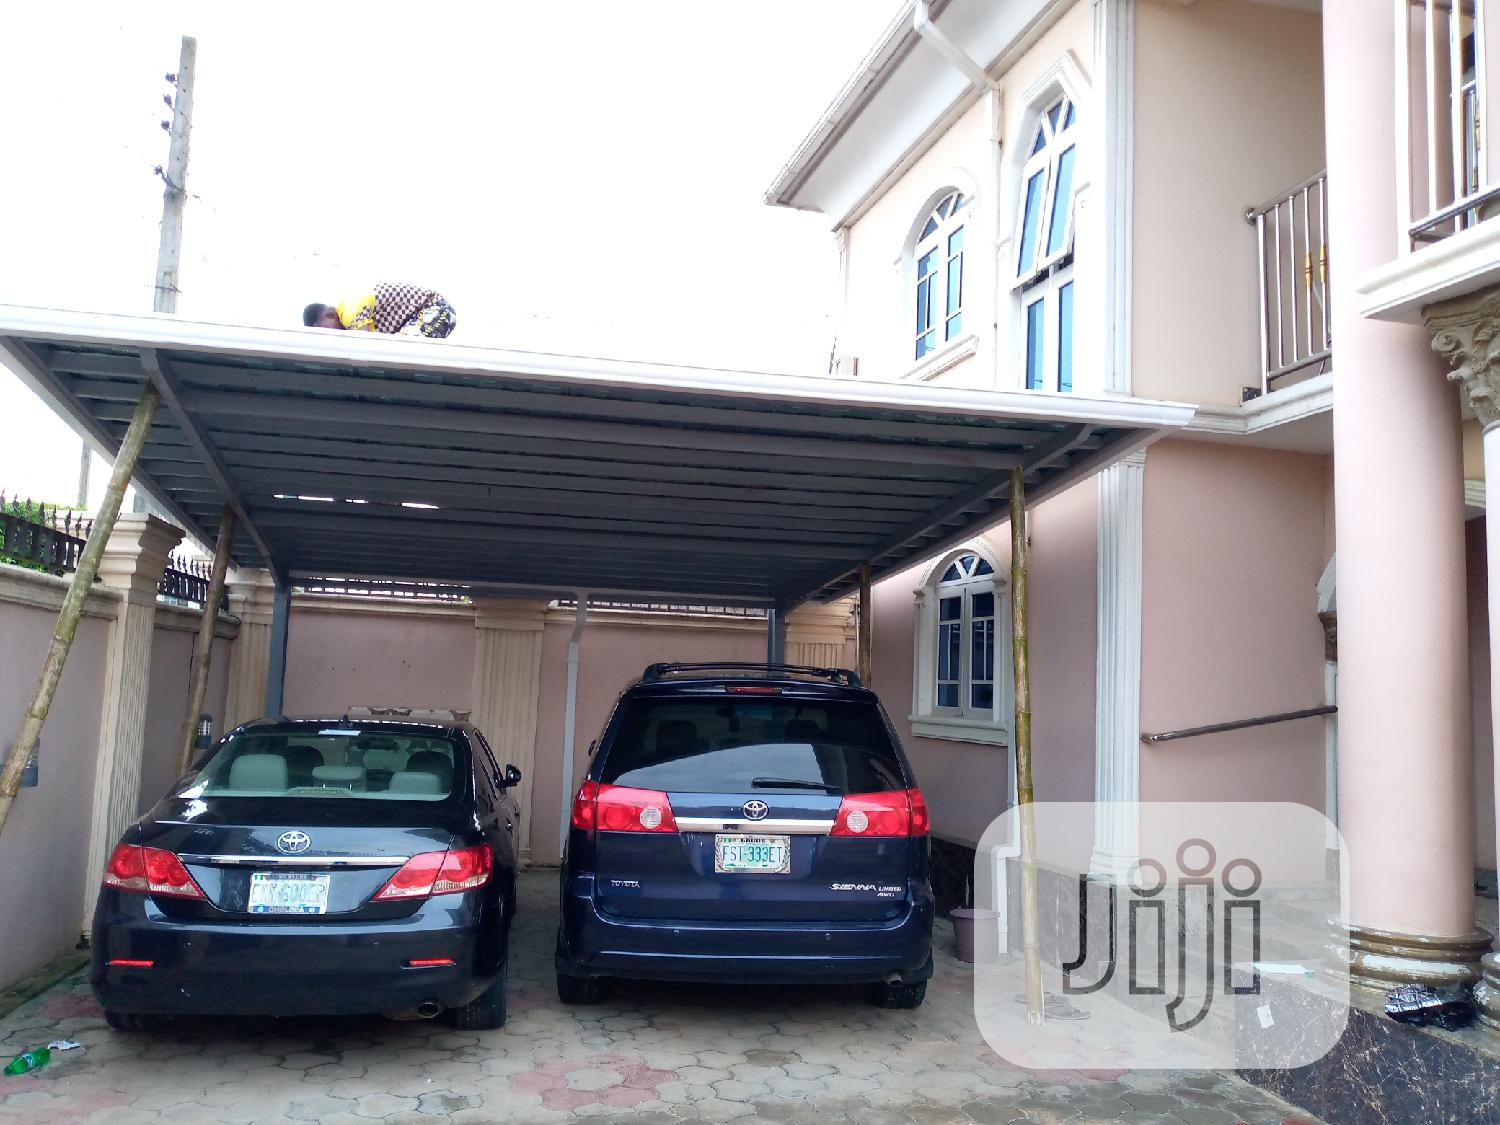 Carport Constructed With HB